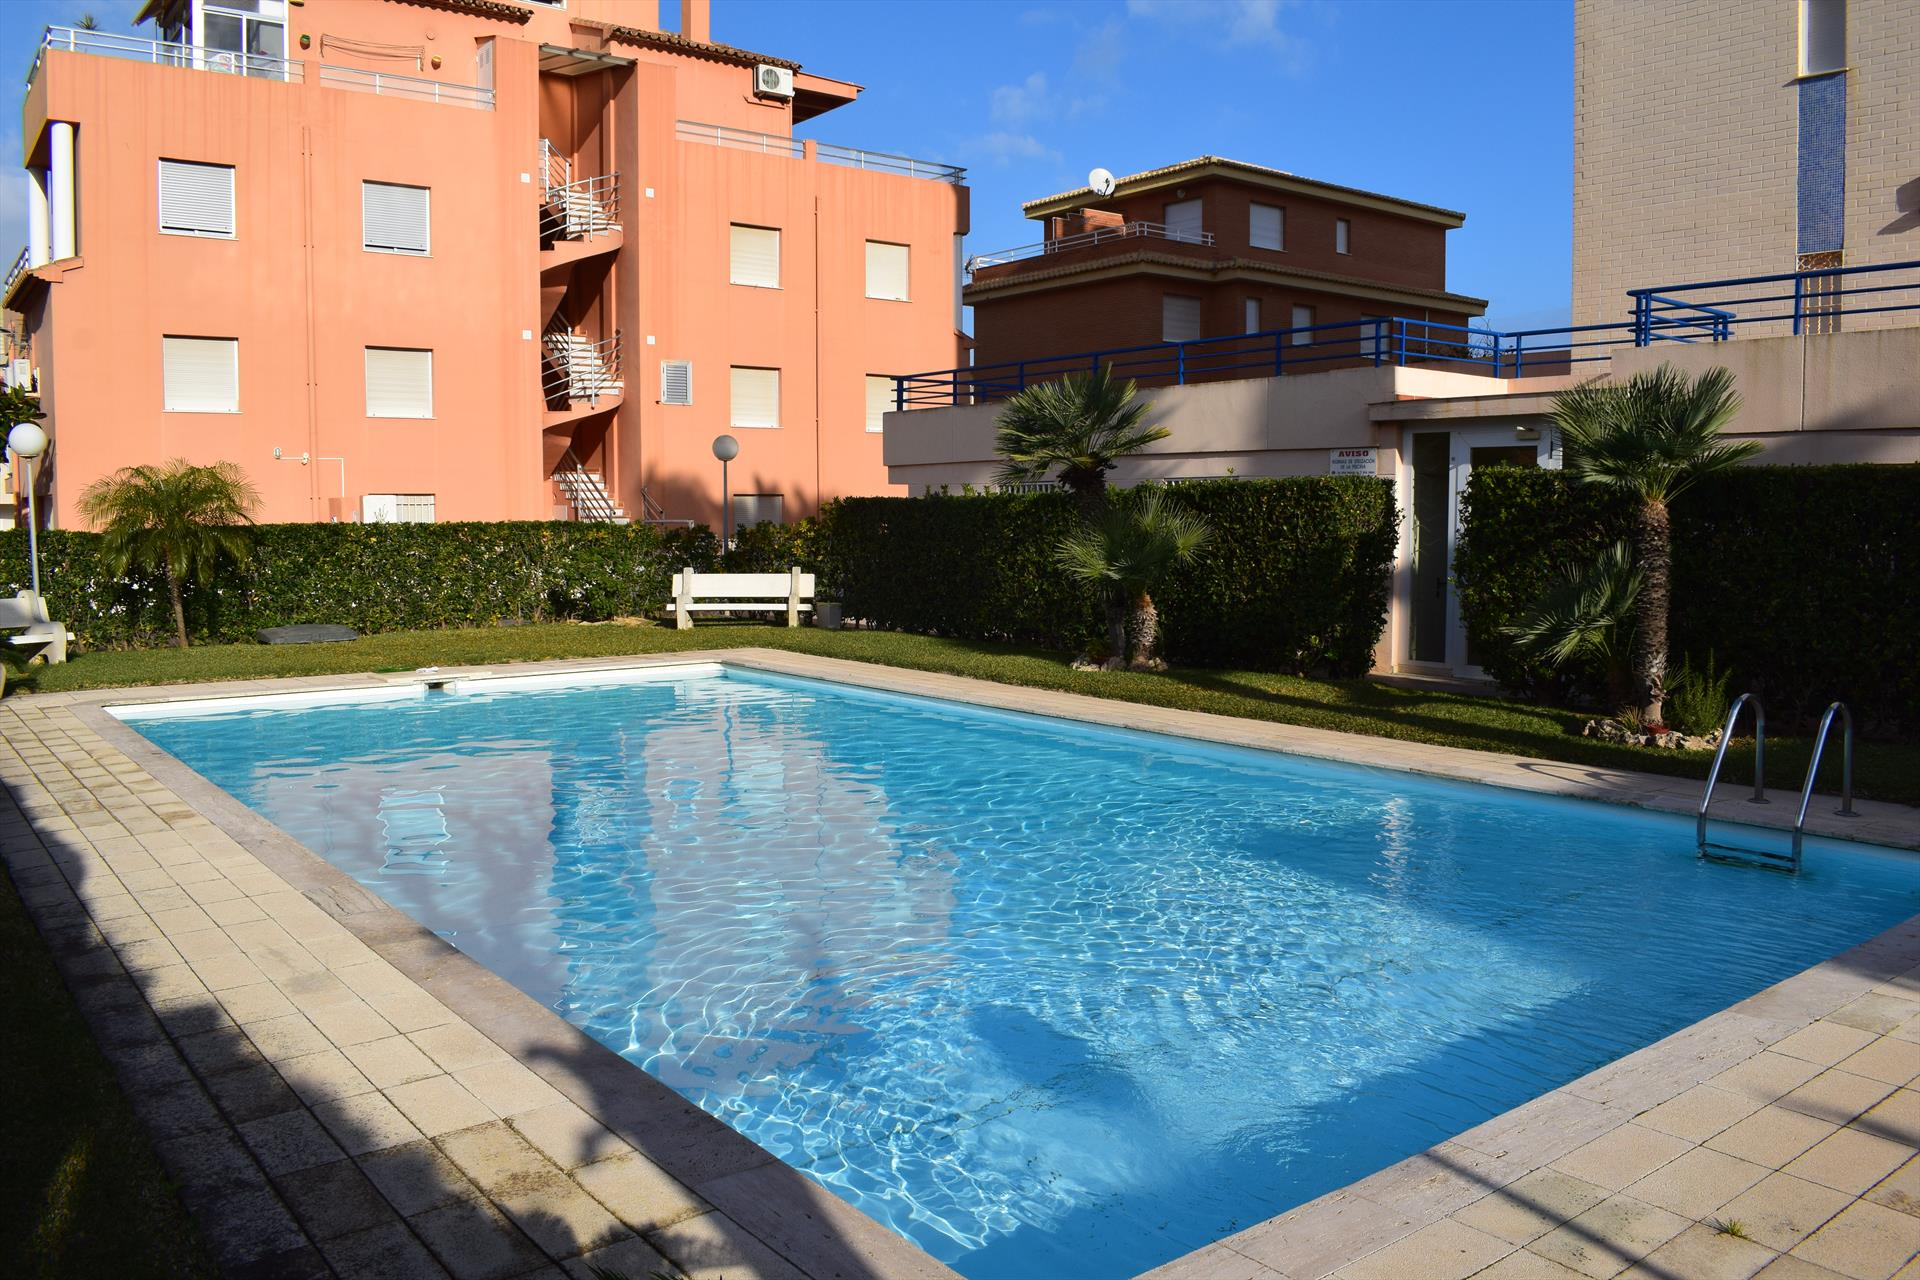 AP111  Aguamarina Sector 5 Aigua Blanca, Beautiful and cheerful apartment in Oliva, on the Costa Blanca, Spain  with communal pool for 4 persons.....